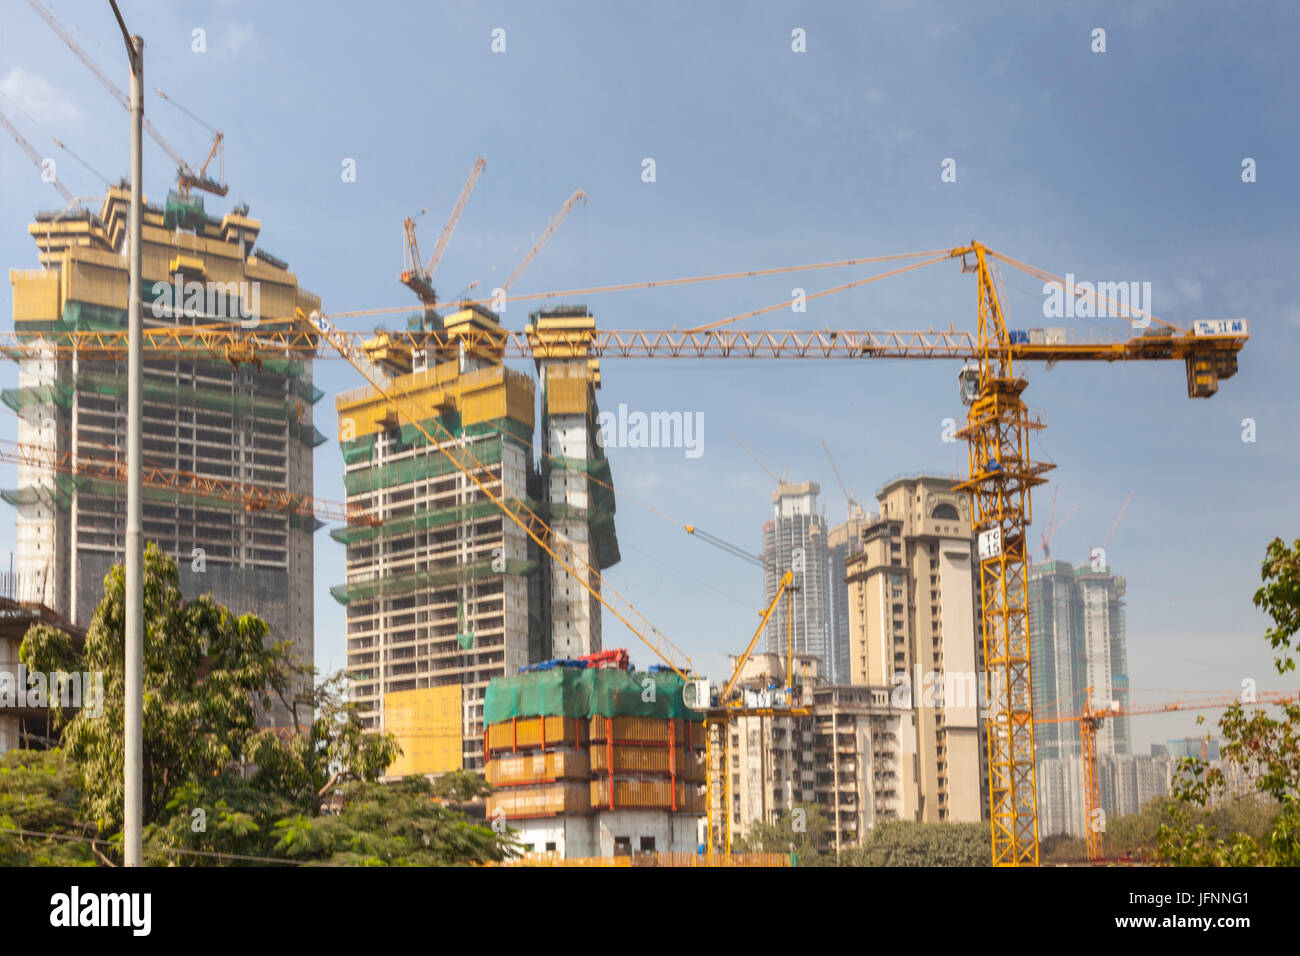 High Rise Building India Stock Photos & High Rise Building ...